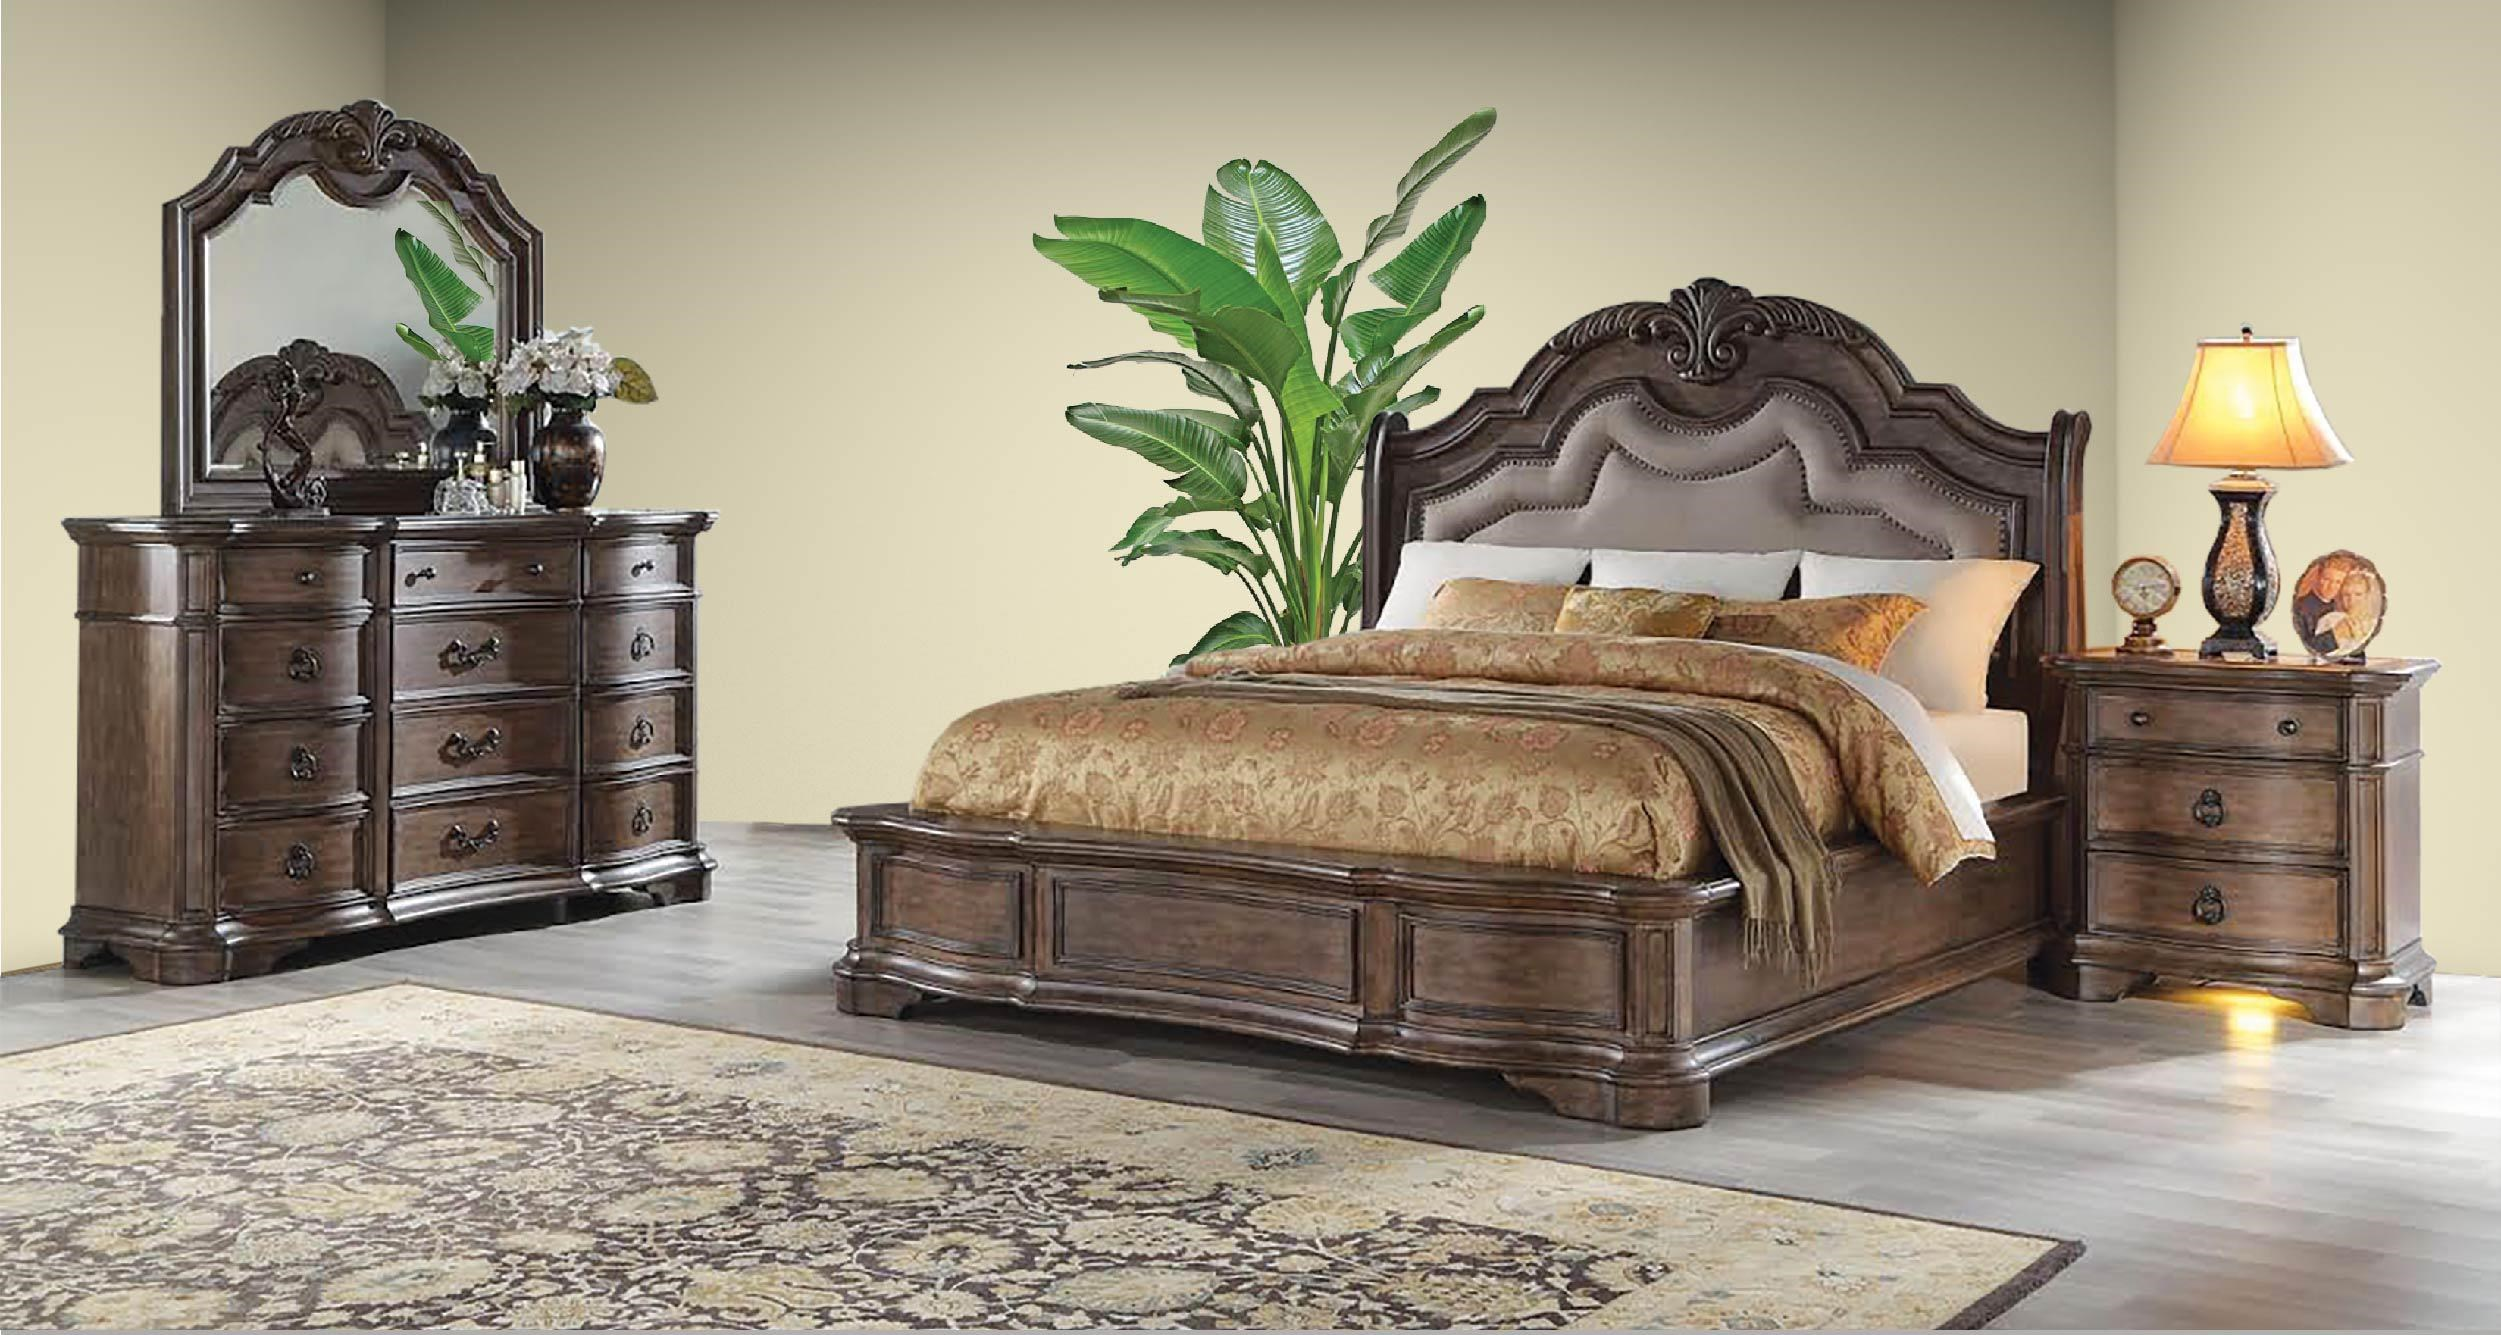 Tulsa 6 Piece Queen Bedroom by Avalon Furniture at Household Furniture